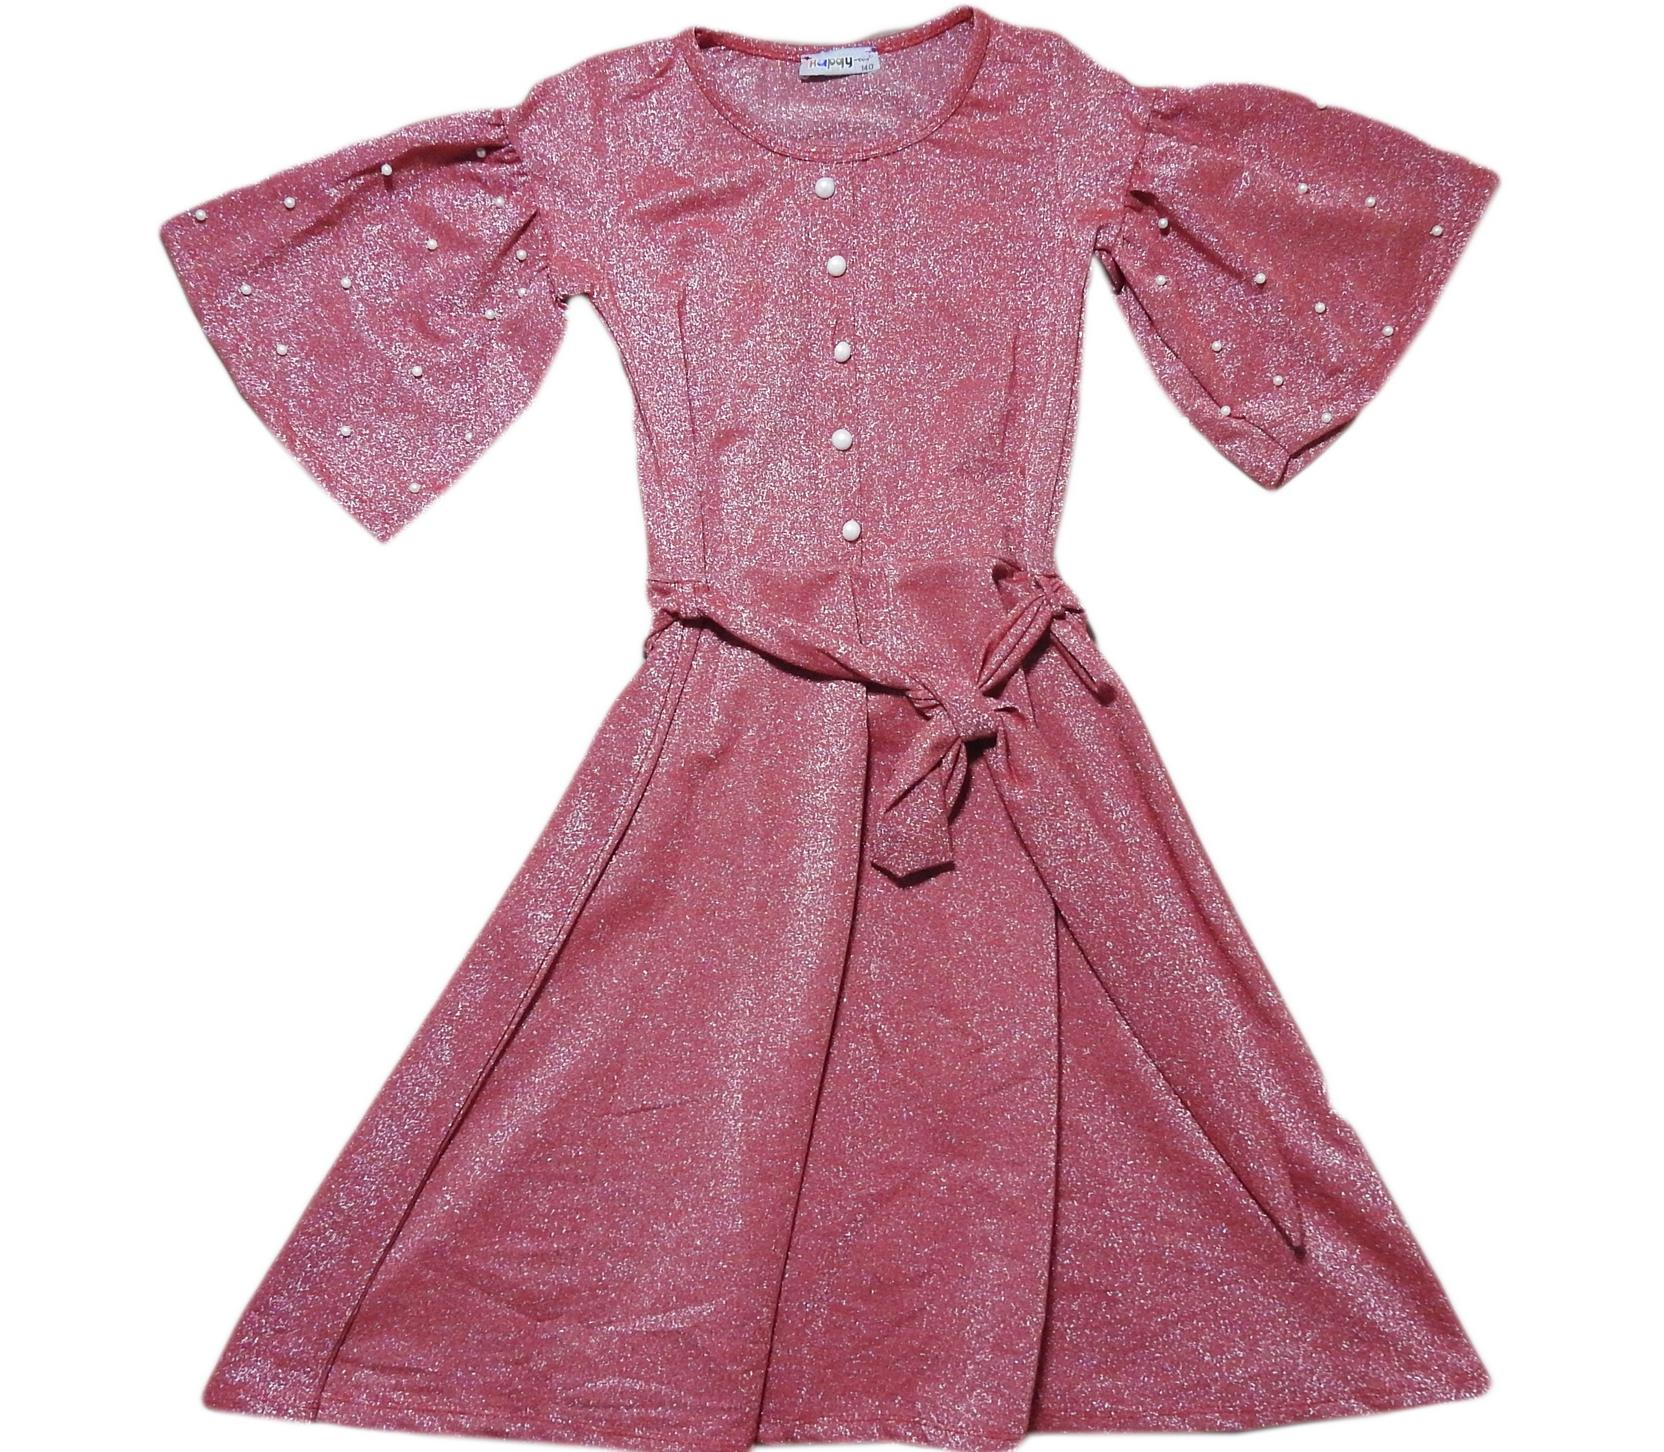 2625 Wholesale baby casual dress for girls at 10-12-14-16 age